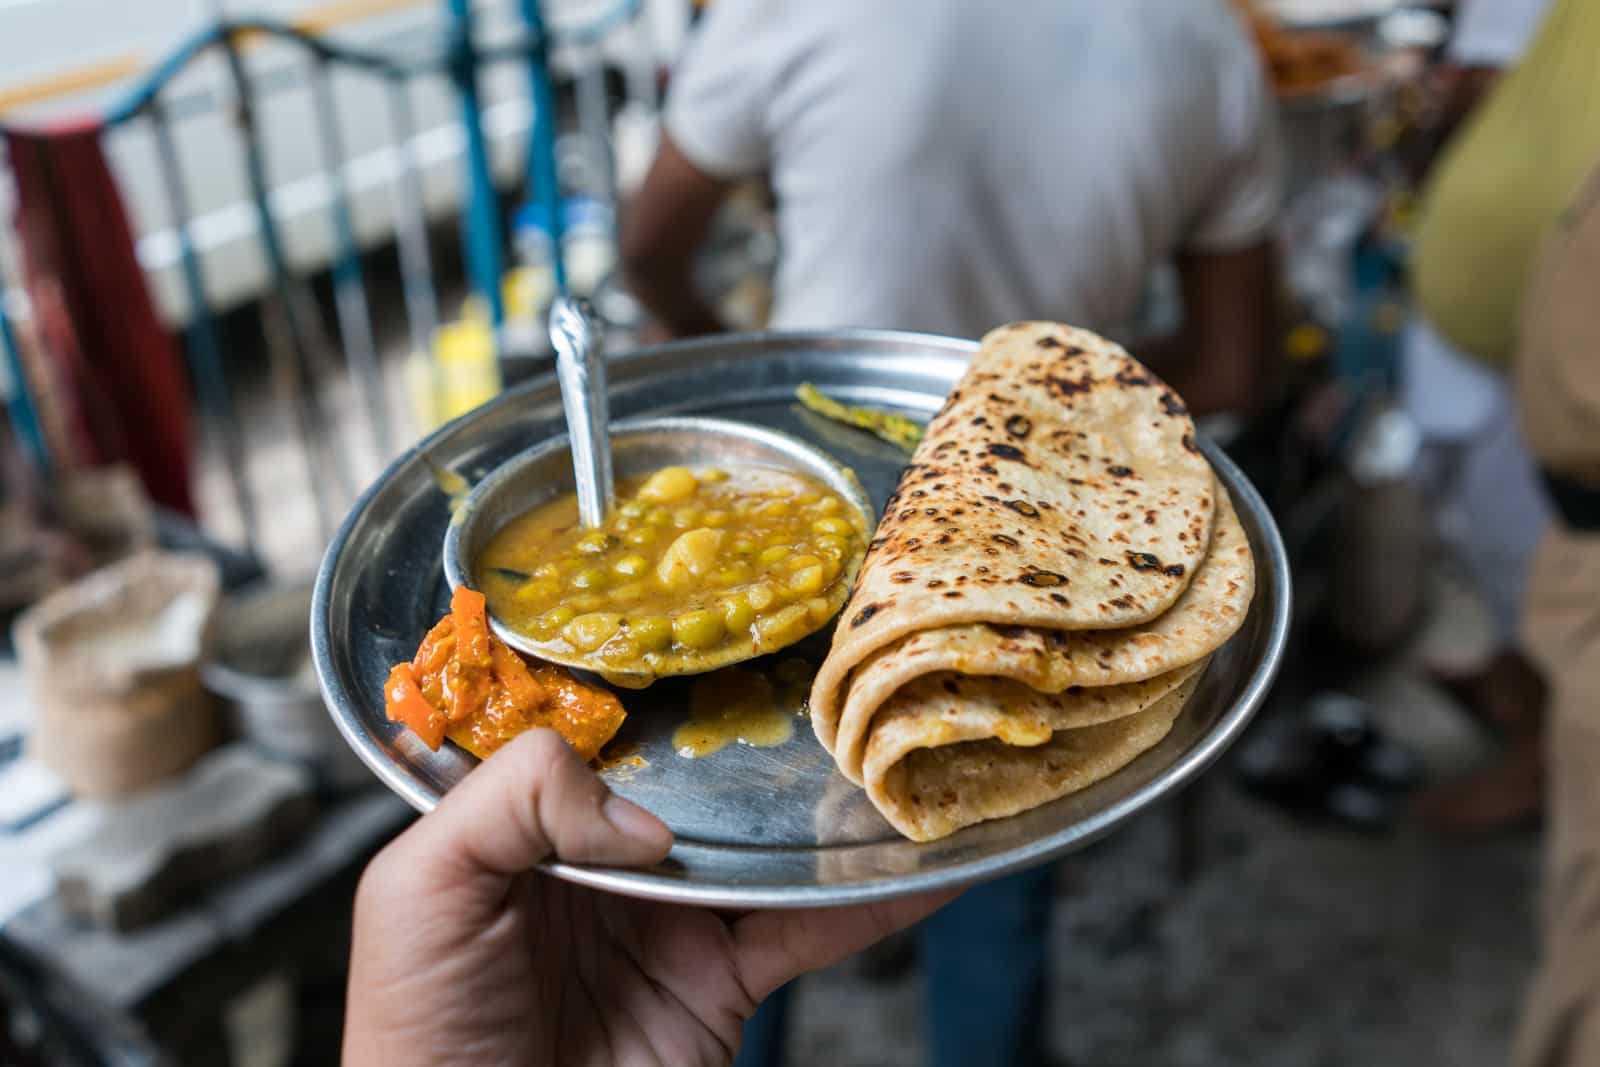 Reasons why Kolkata is my favorite Indian megacity - Cheap street food - Lost With Purpose travel blog